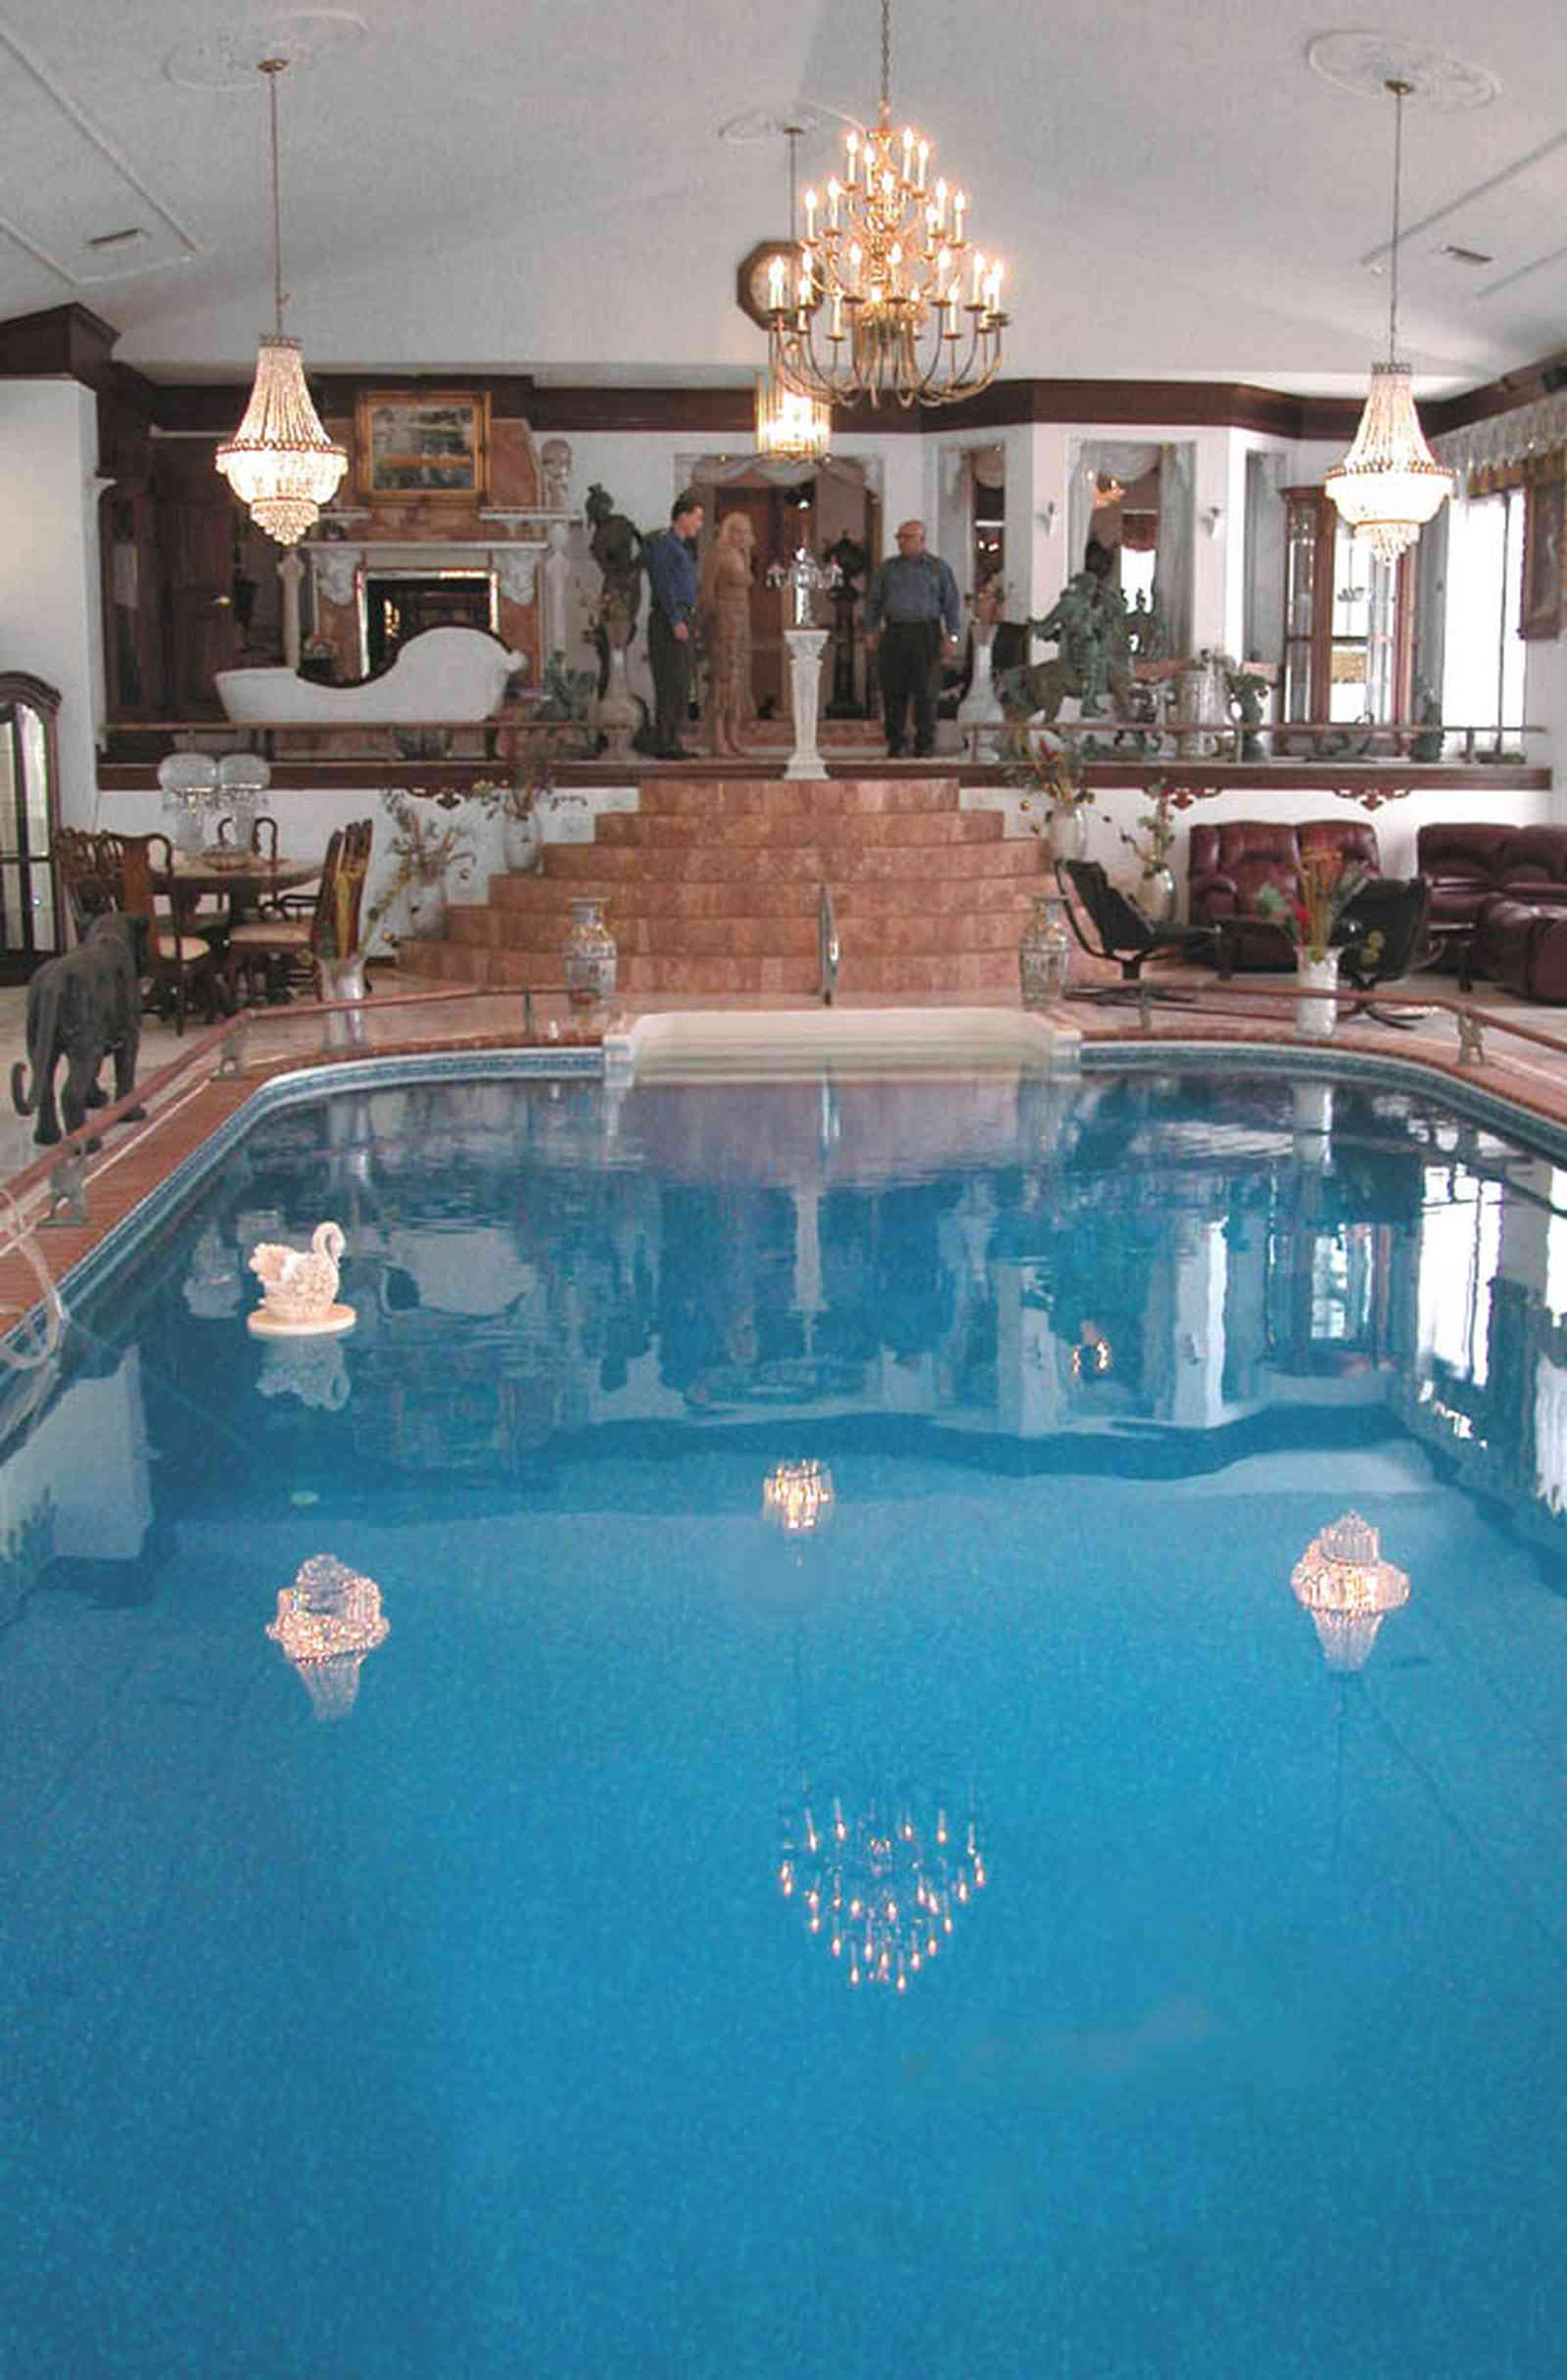 Scenic-Highway:-3780-Scenic-Ridge-Drive_05.jpg:  olympic swimming pool, living room, marble floors, chinese urns, tassels, oriental rug, pool in livingroom, inside swimming pool, french provincial furniture, crystal chandelier, reflection in pool, swan in water, marble steps, swag curtains